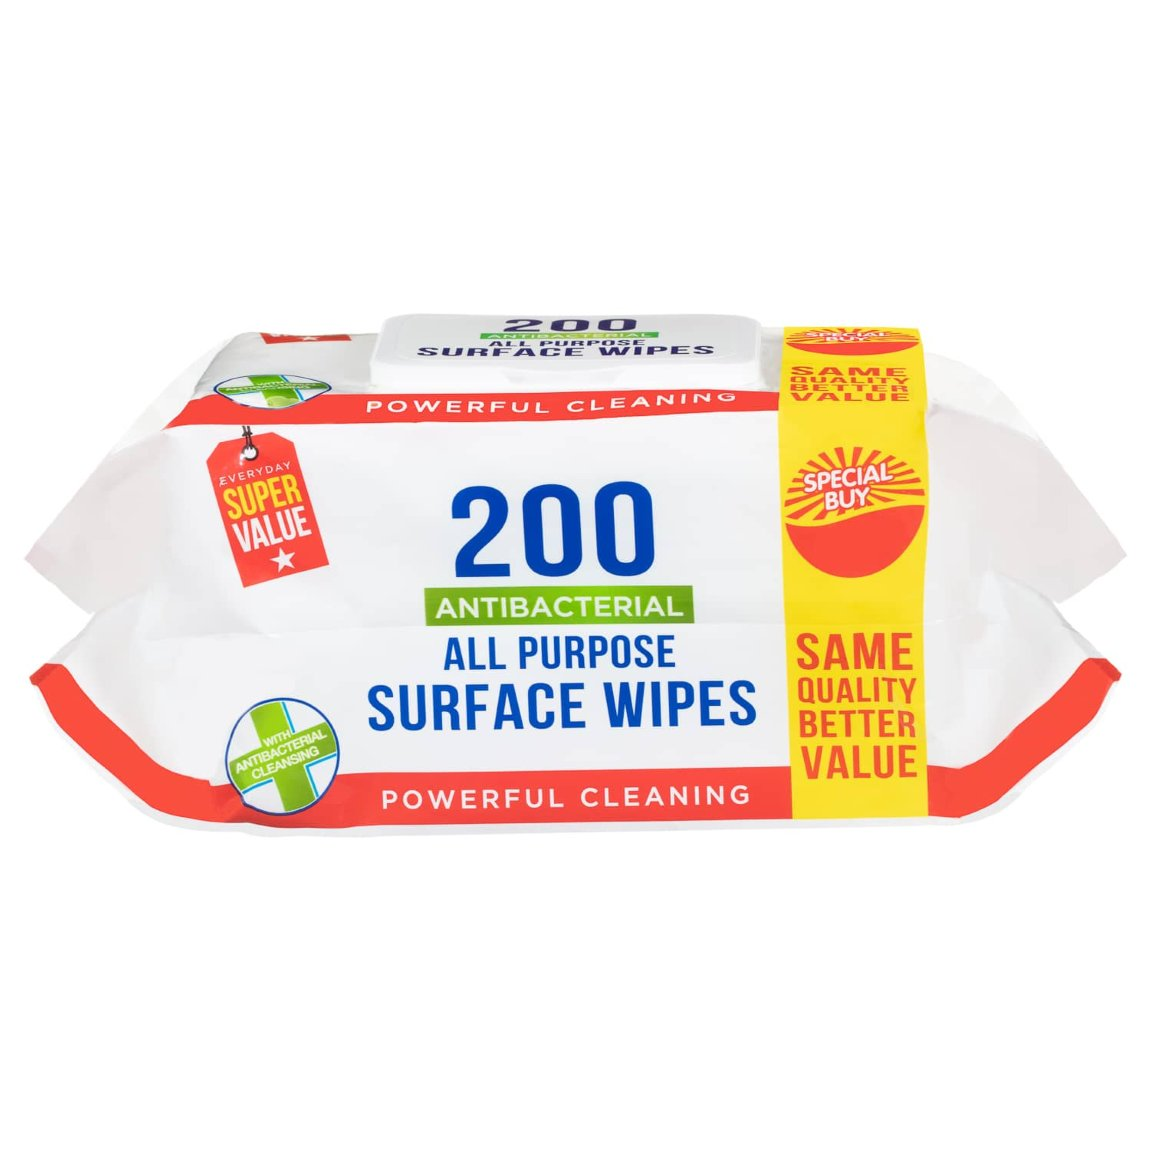 Antibacterial All Purpose Surface Wipes 200pk